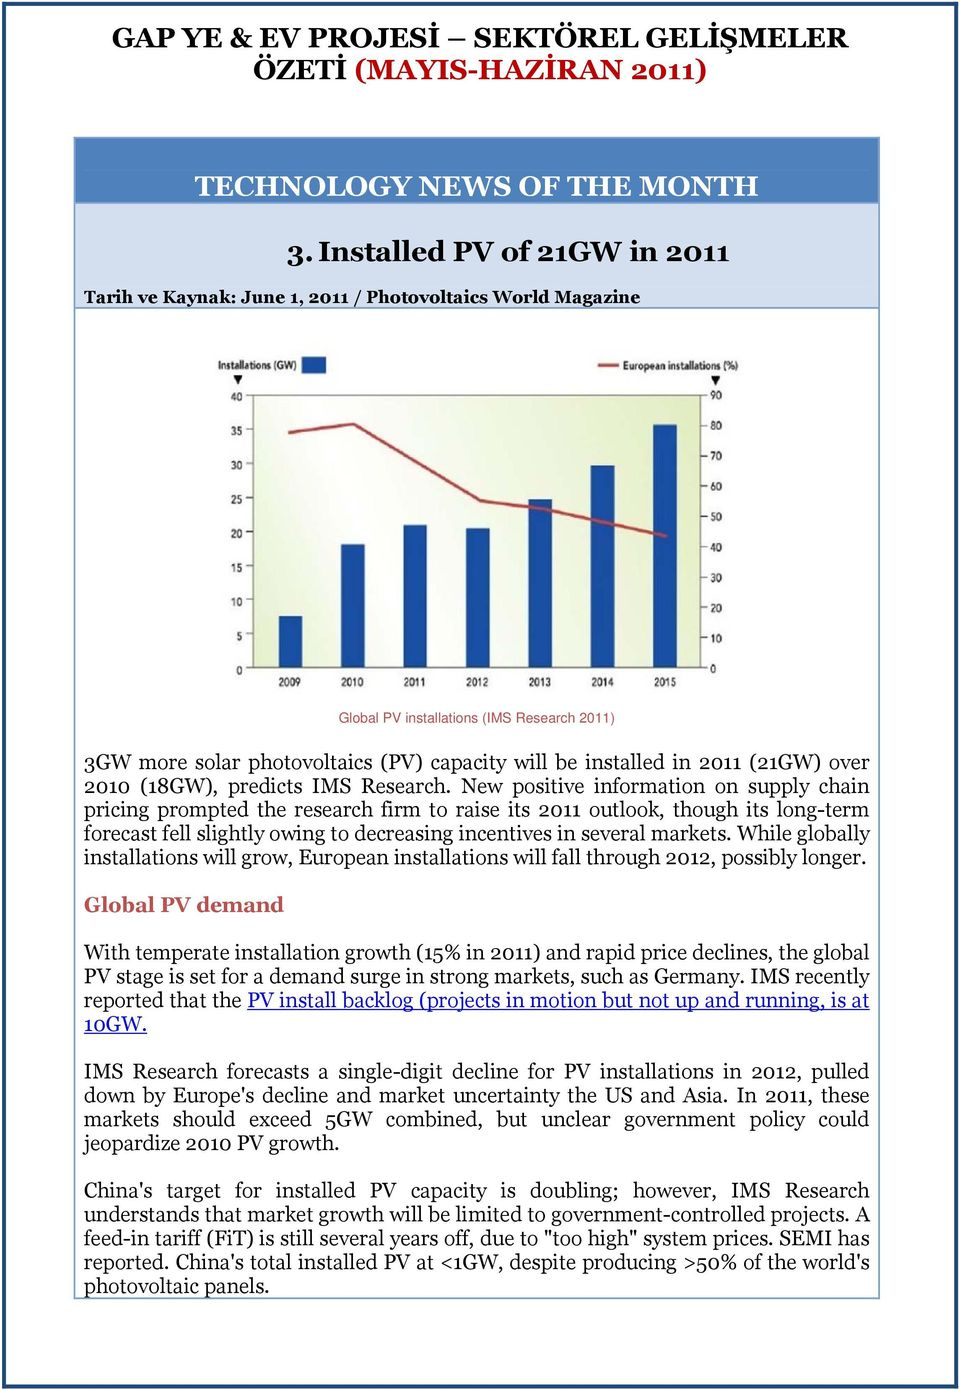 2011 (21GW) over 2010 (18GW), predicts IMS Research.